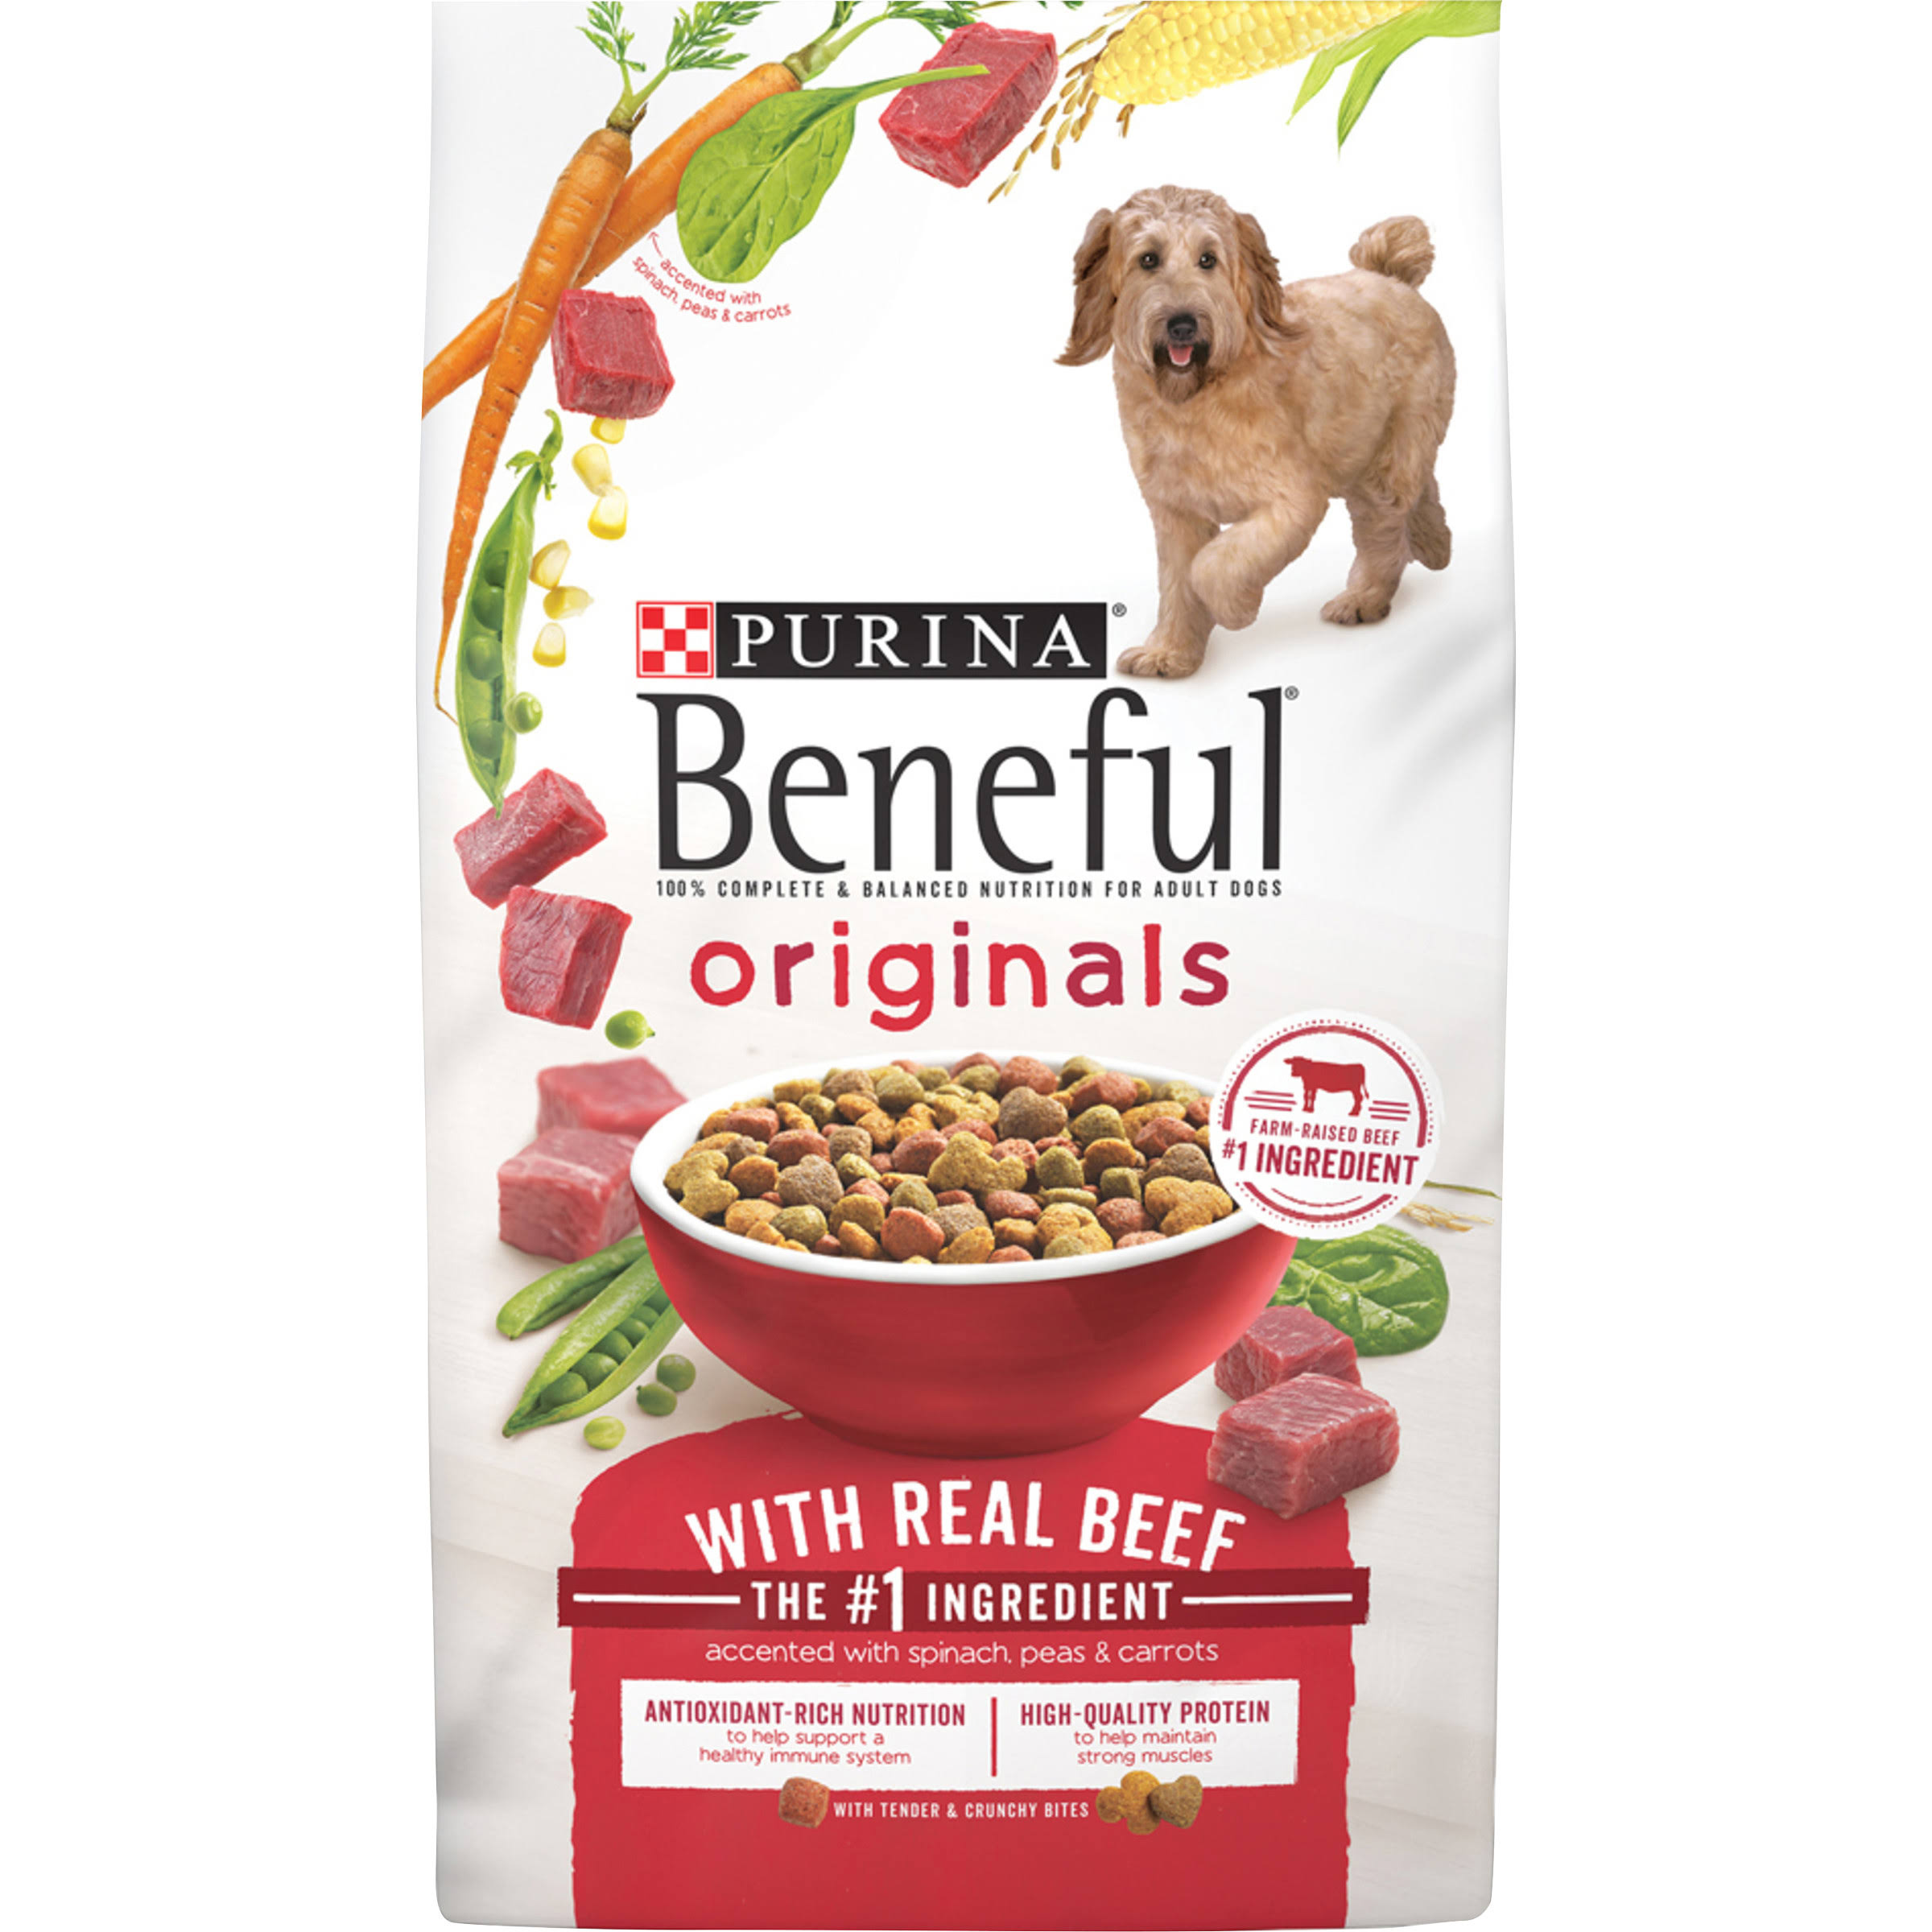 Purina Beneful Originals Dog Food - 6.3lb, Real Beef